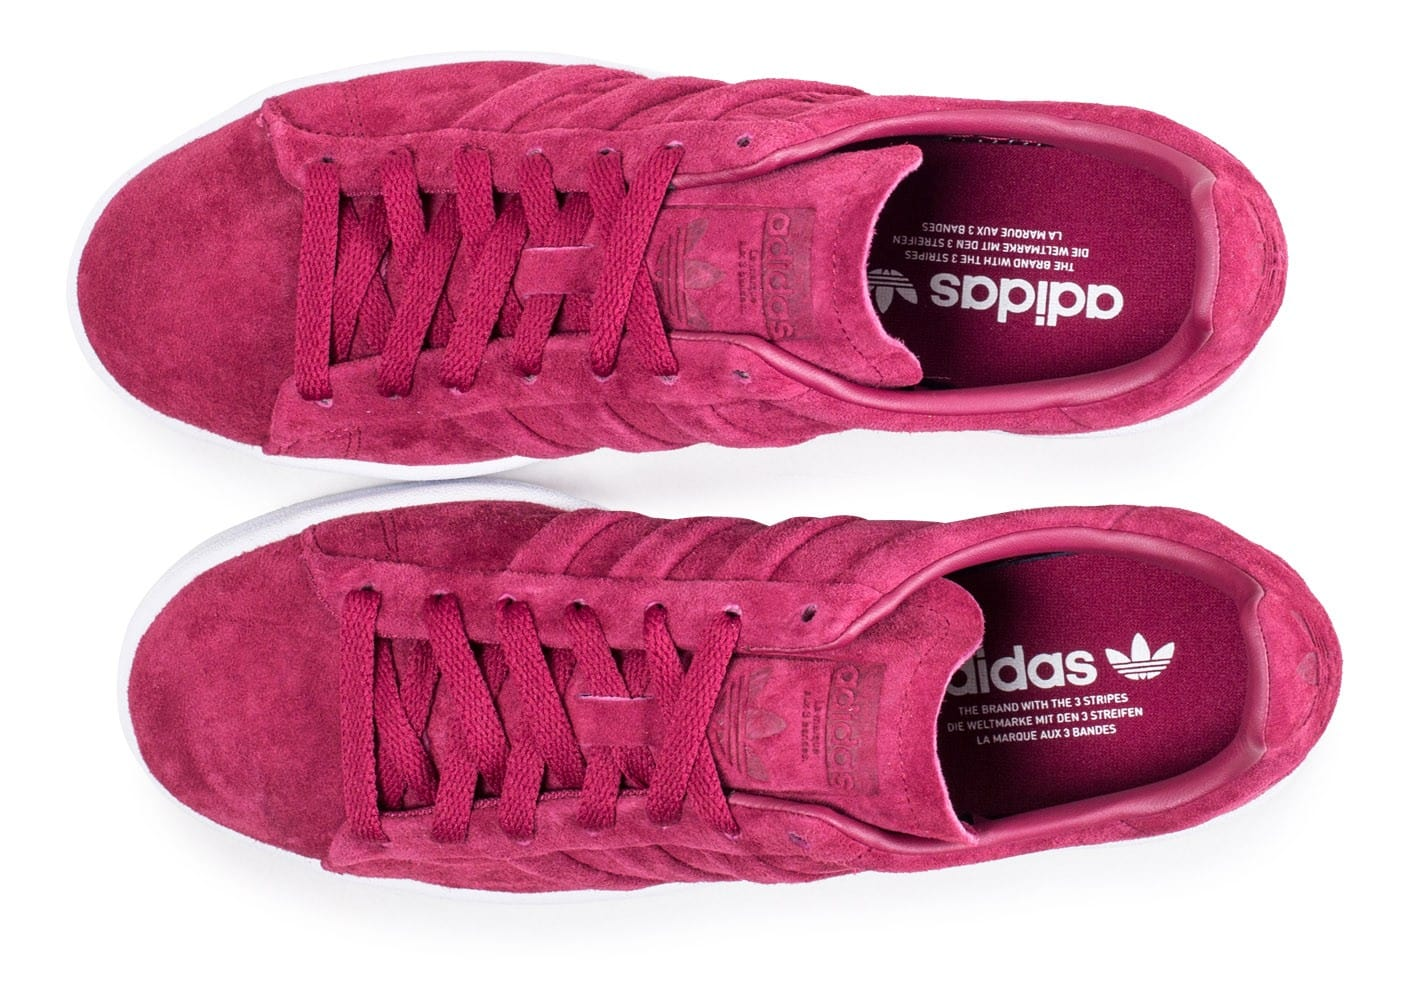 Bordeaux Turn Stitch Baskets Adidas Chaussures Rouge Campus And 7wPnW8Xq